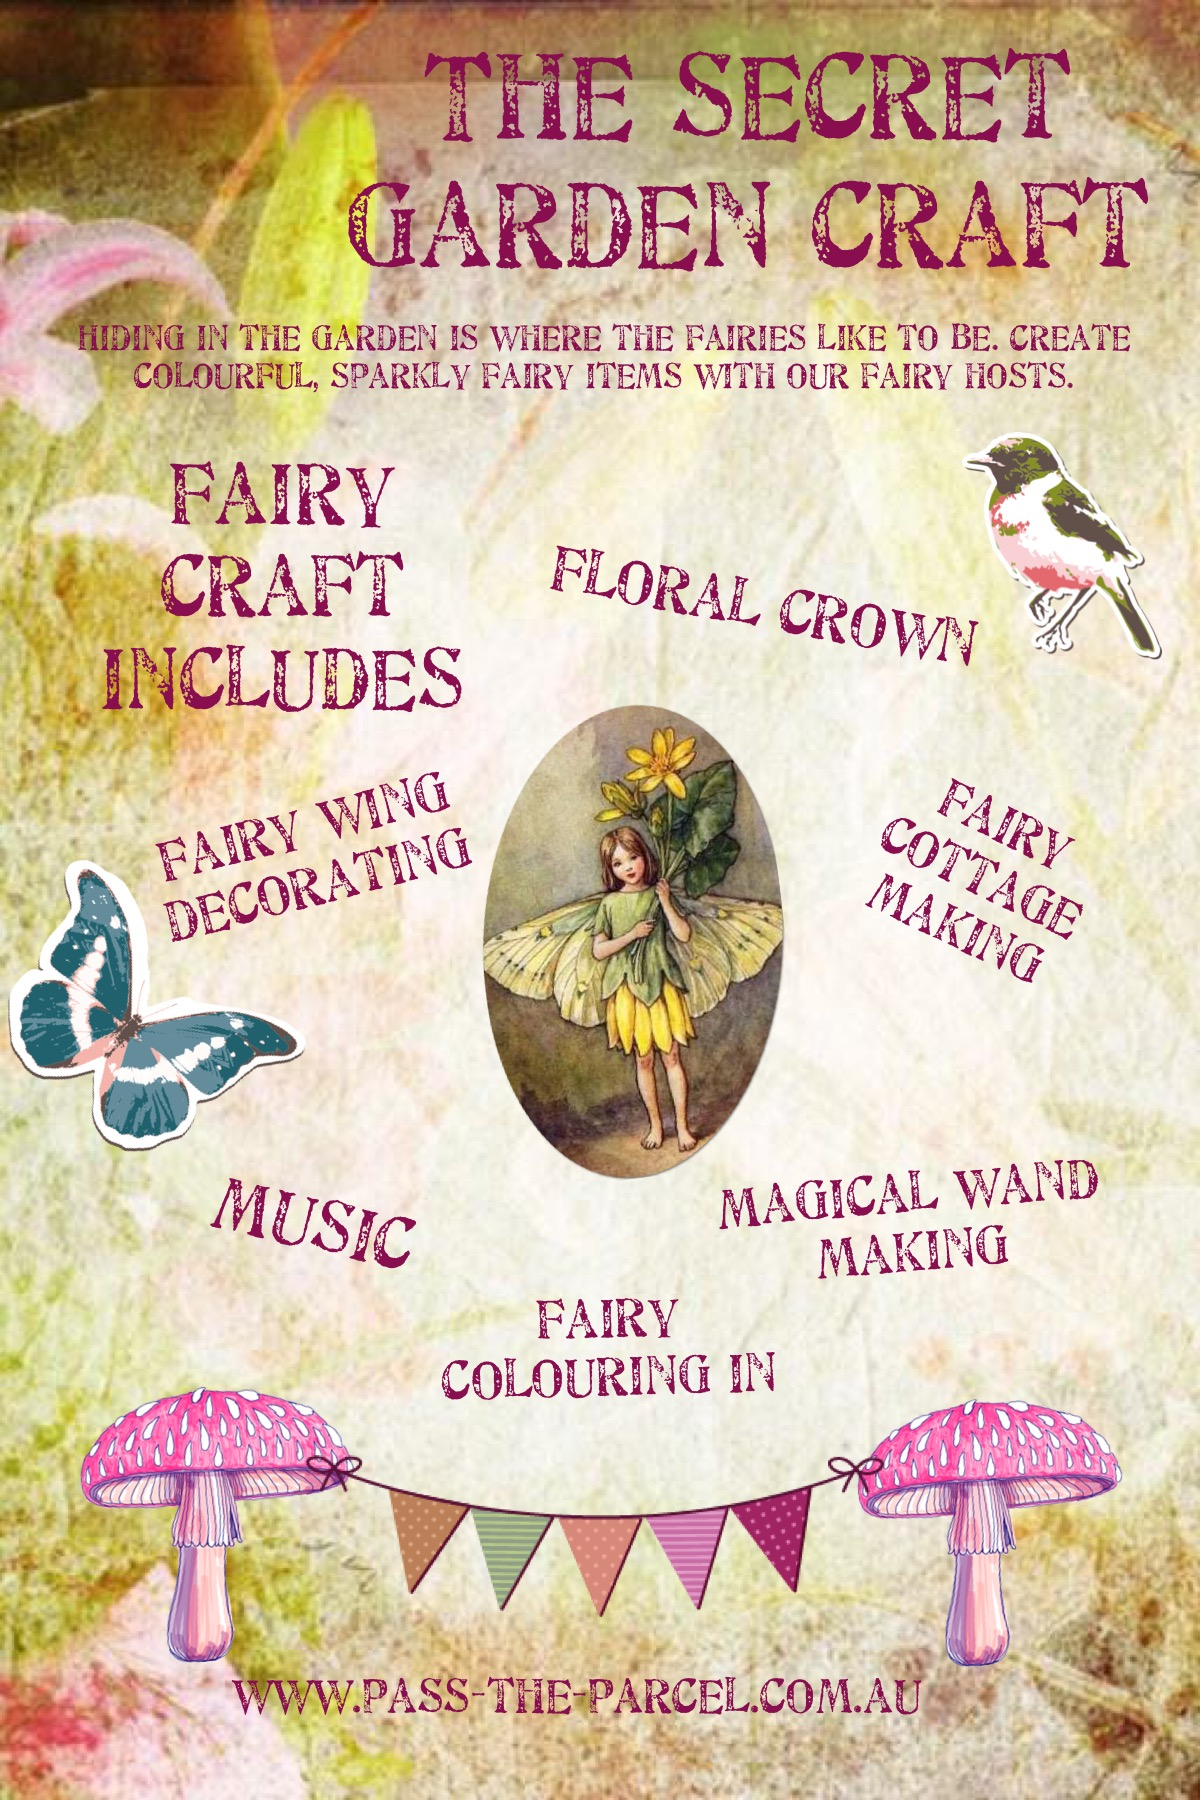 Fairy craft